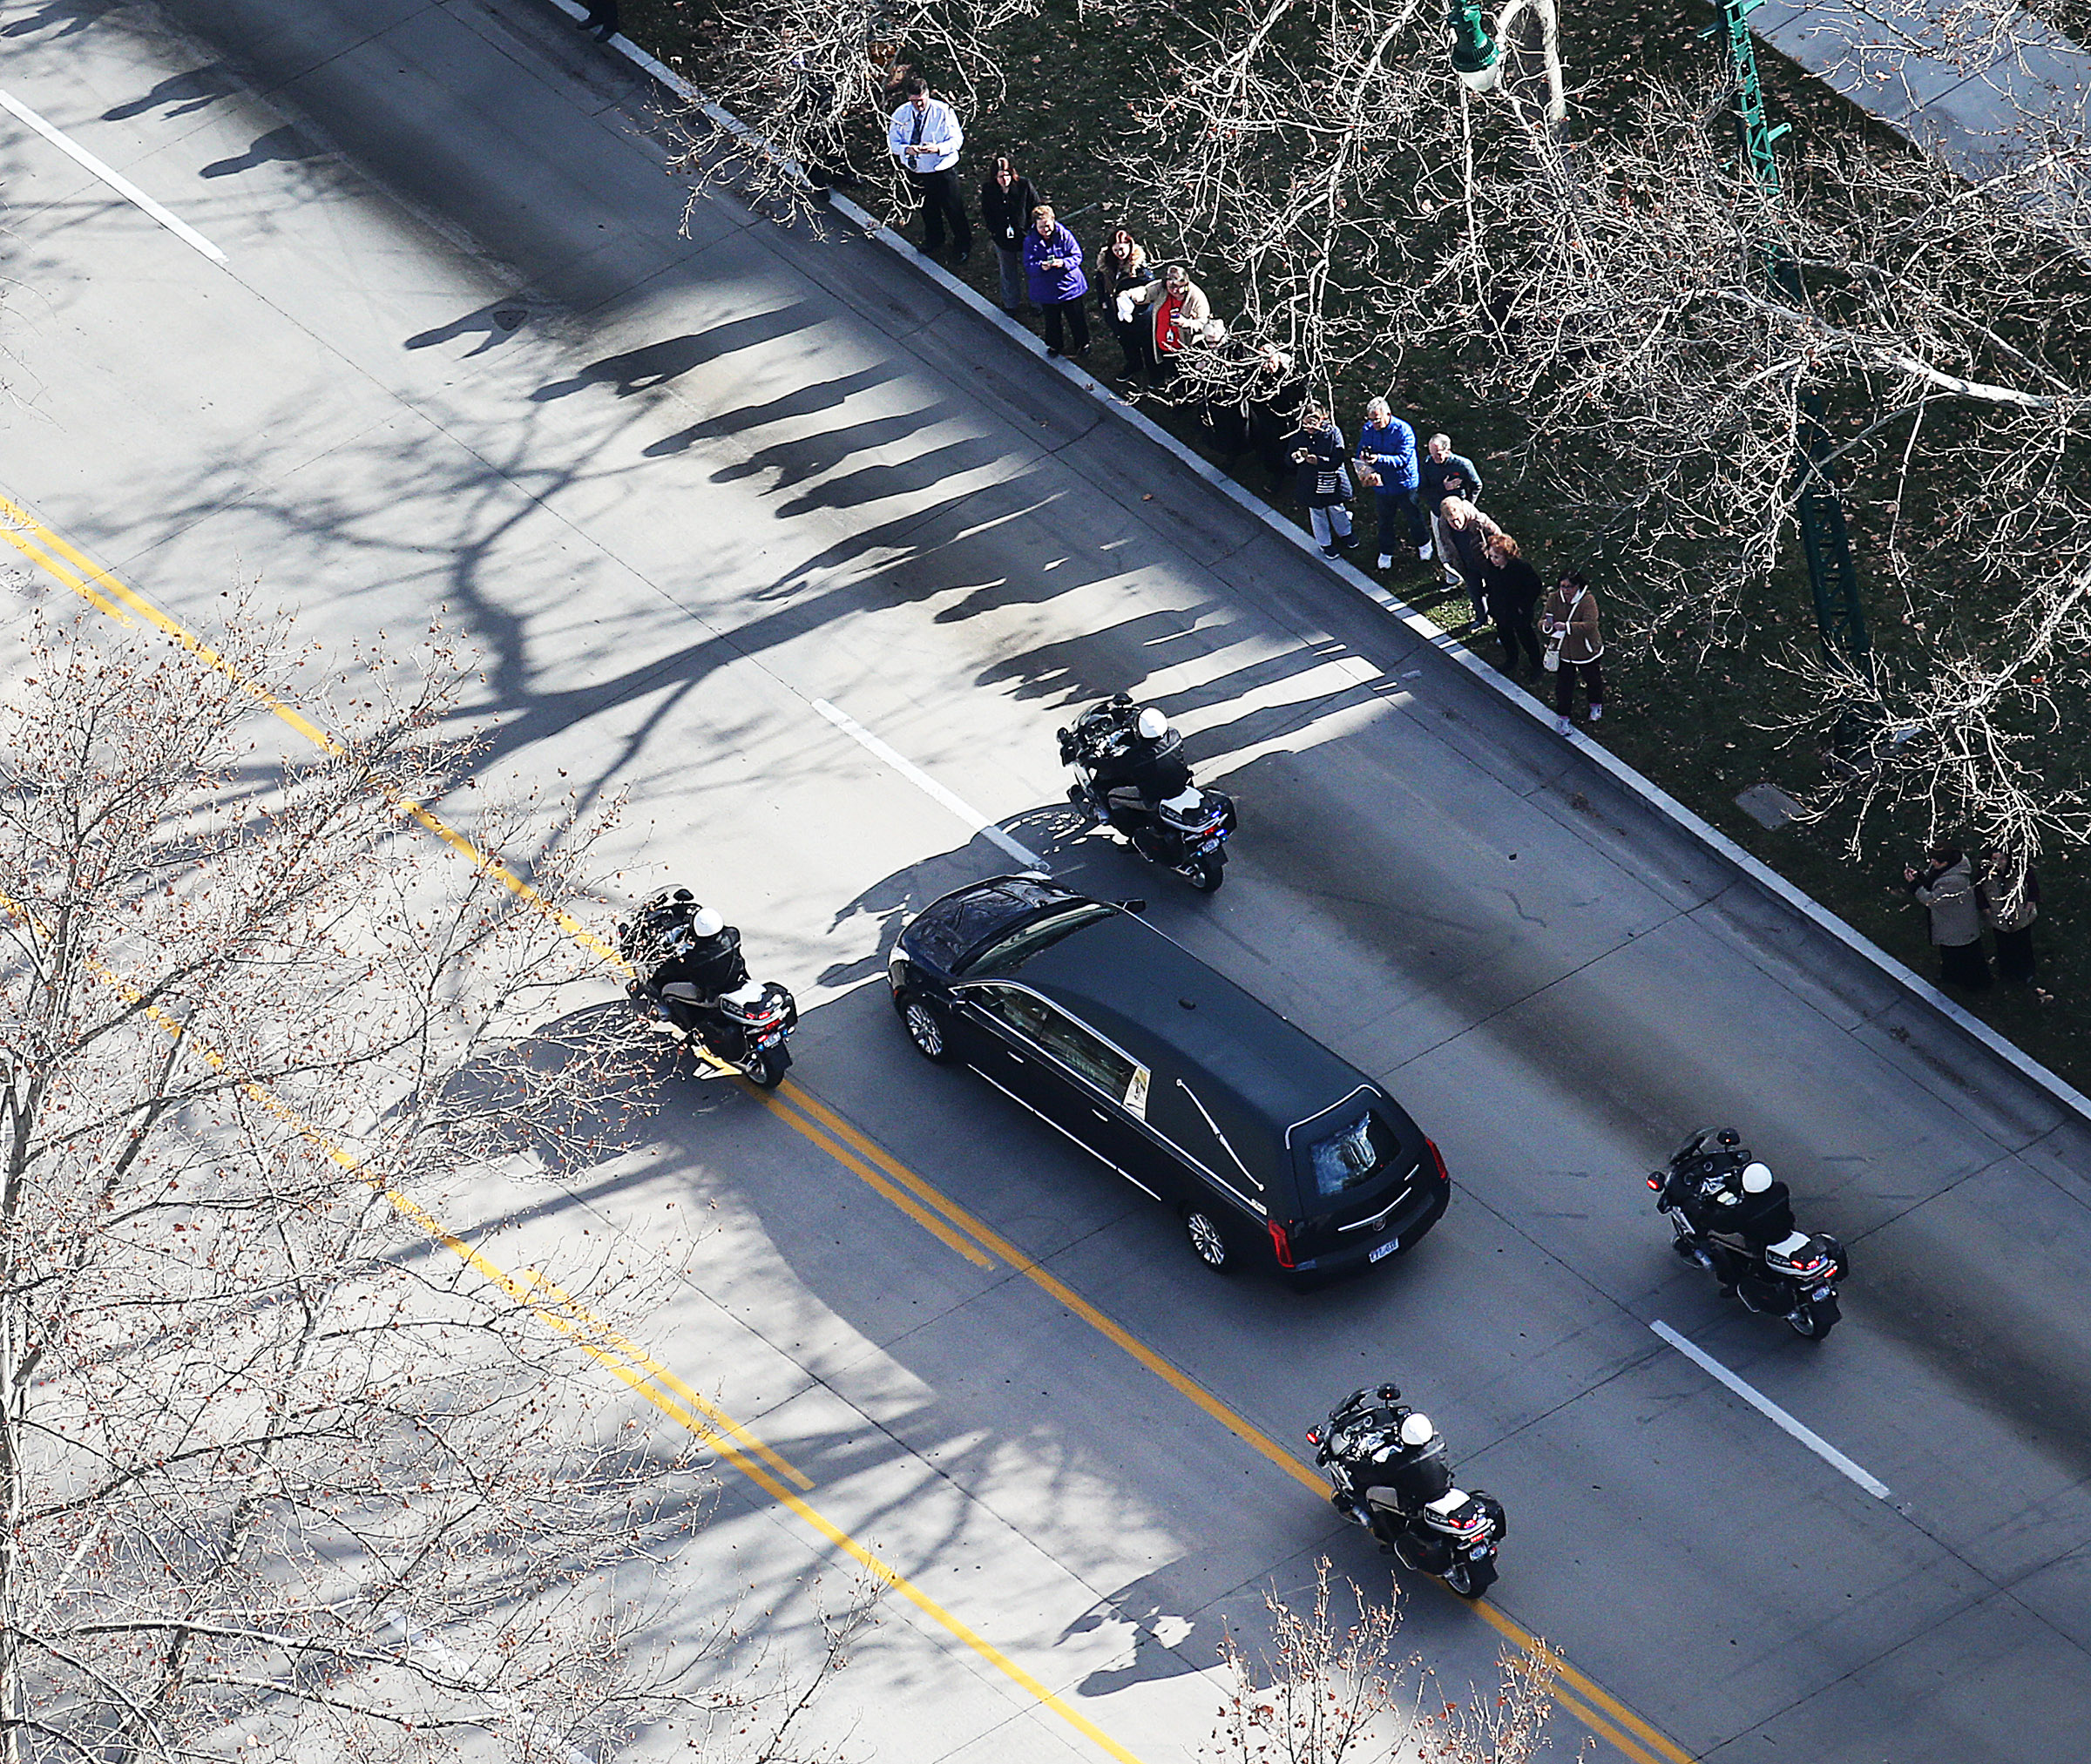 Mourners watch as the funeral procession for Church President Thomas S. Monson makes its way to the Salt Lake City cemetery on Friday, Jan. 12, 2018.